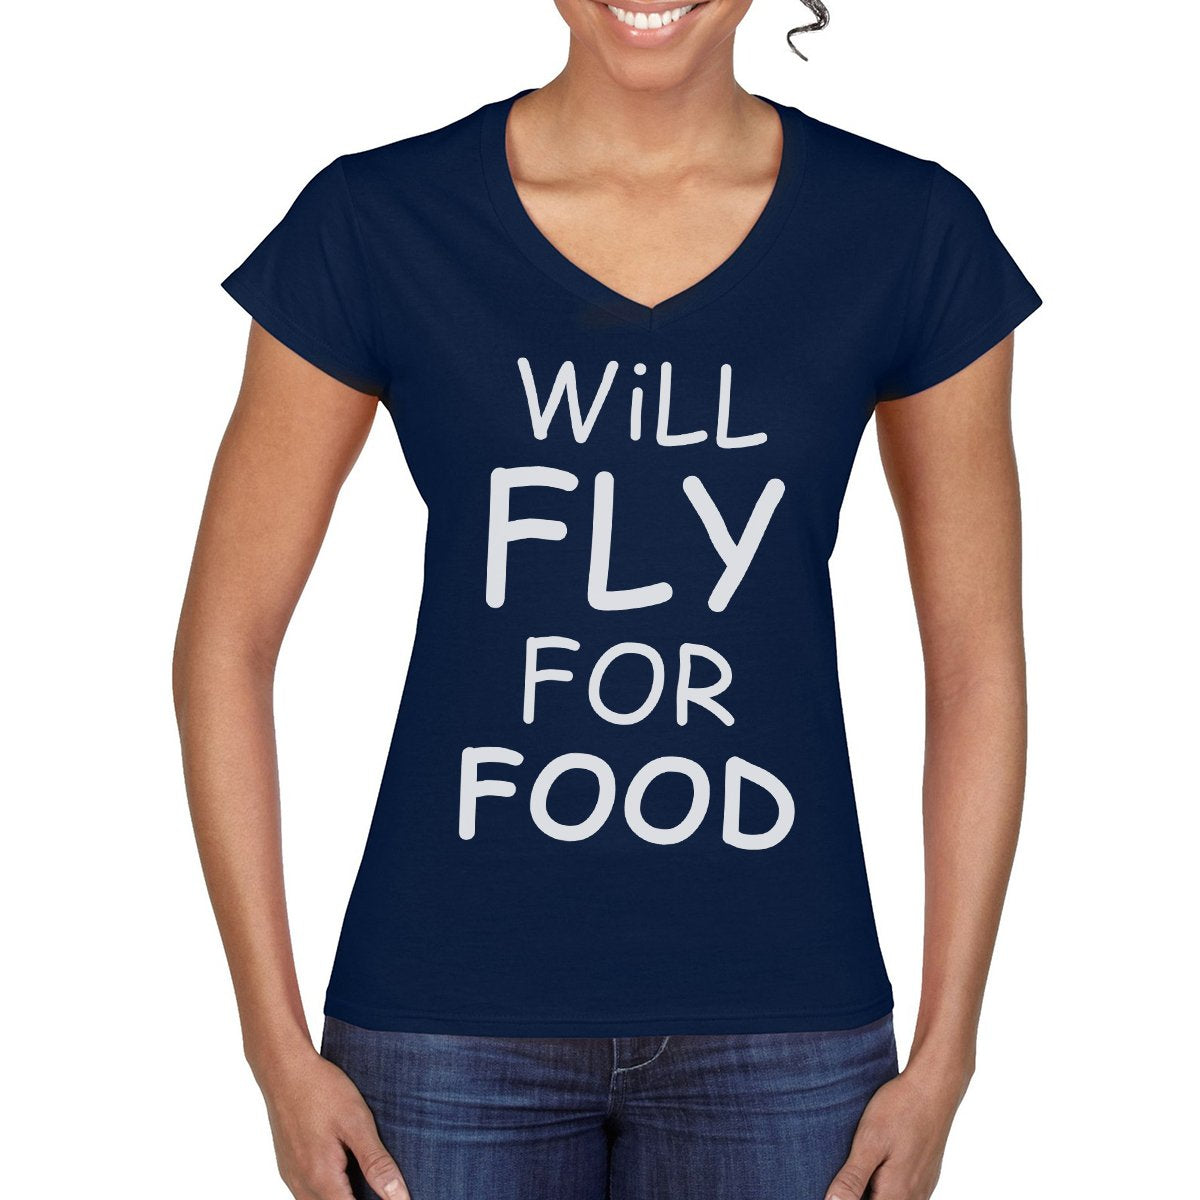 WILL FLY FOR FOOD Women's Semi-Fitted T-Shirt